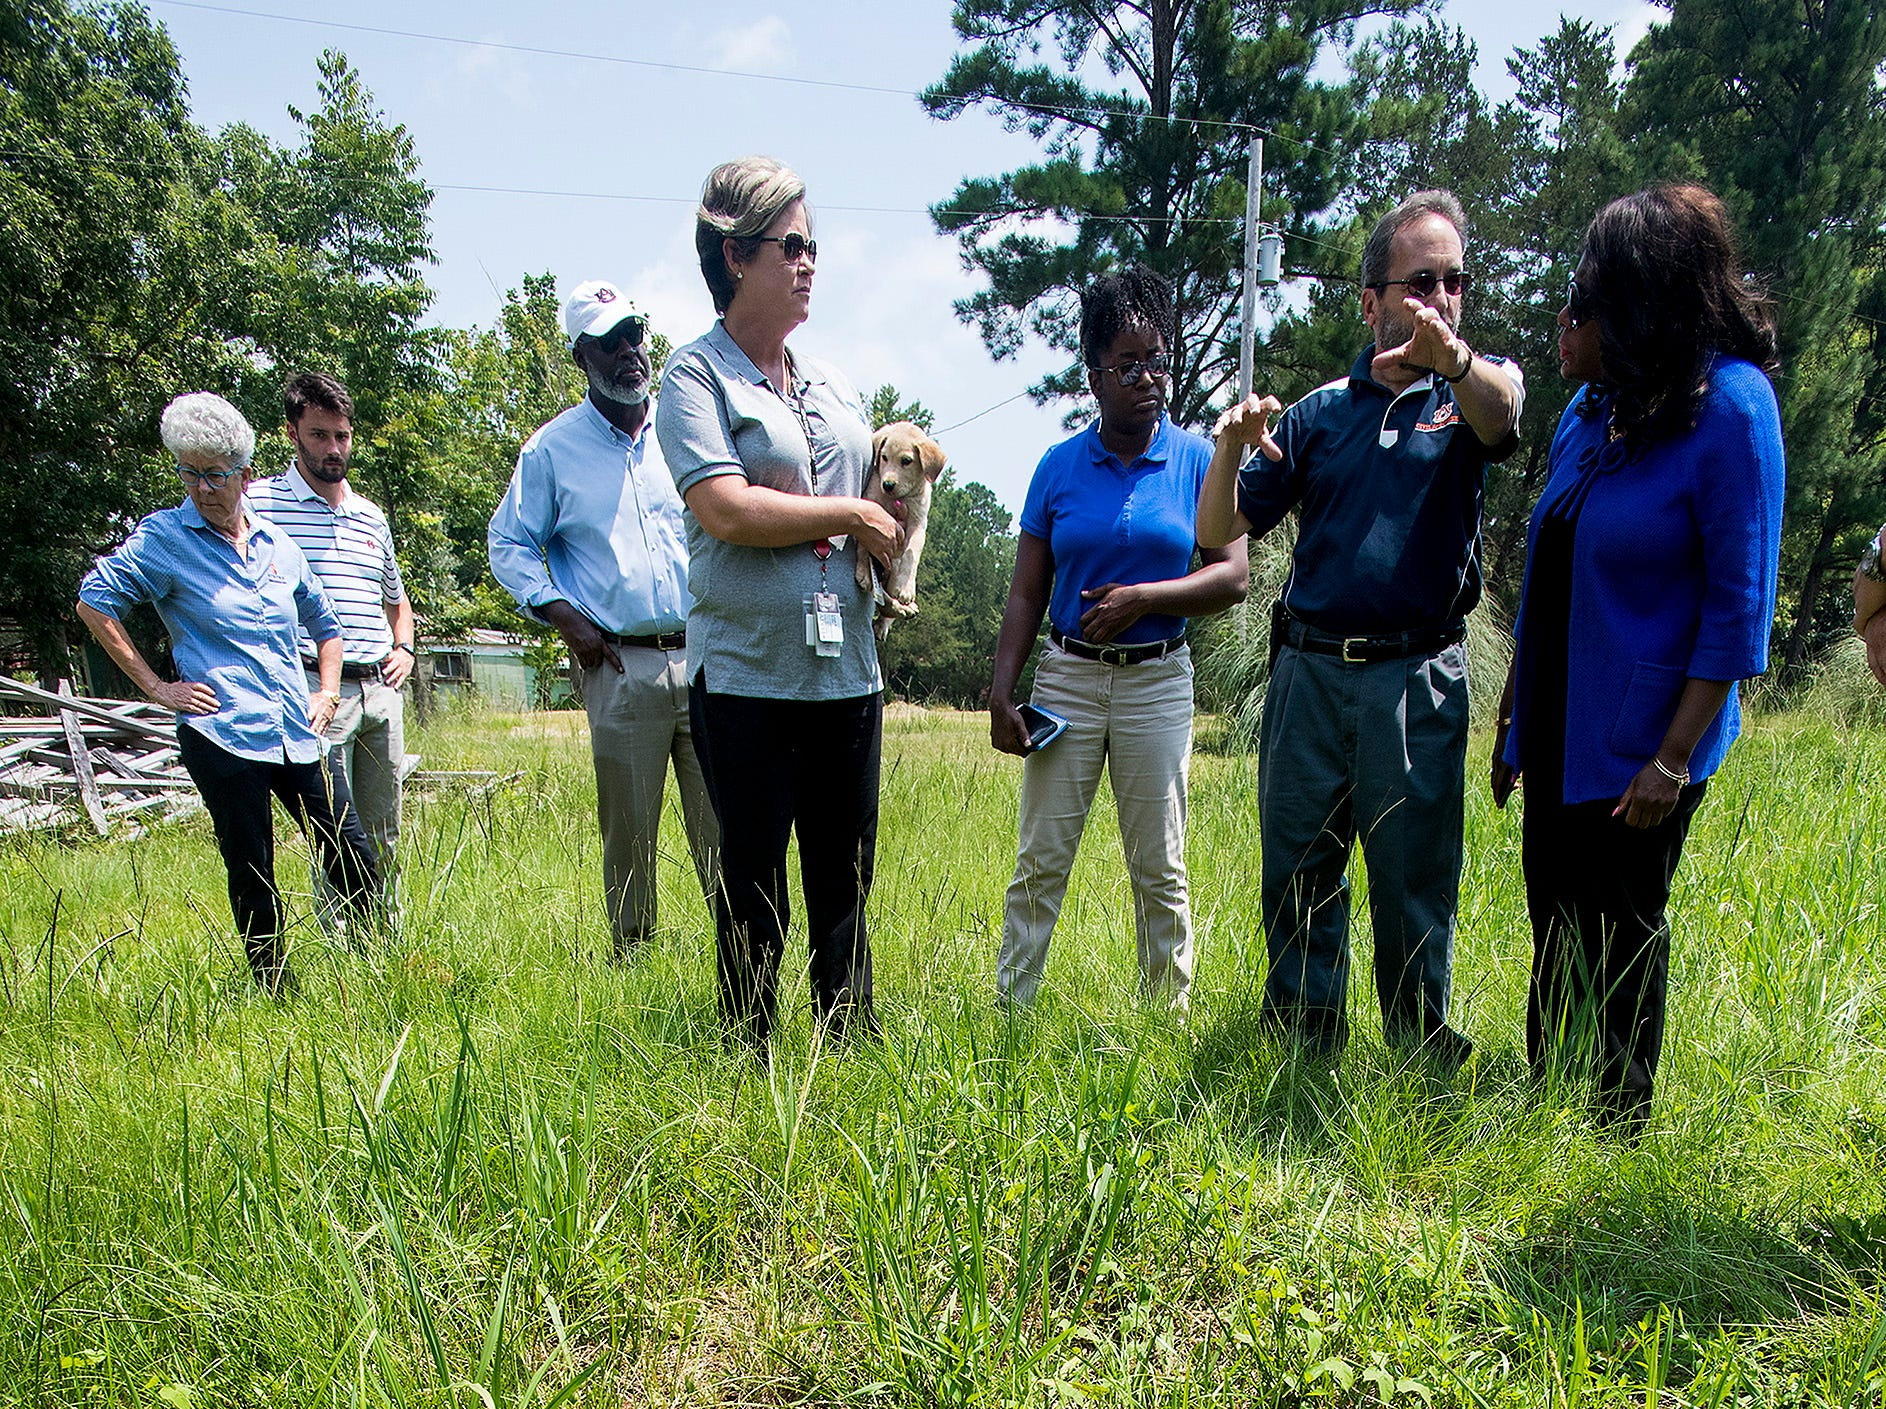 Congresswomen Terri Sewell talks with a group of engineering and health experts as they tour homes with sewage problems in rural Lowndes County, Ala., on Monday, July 30, 2018.